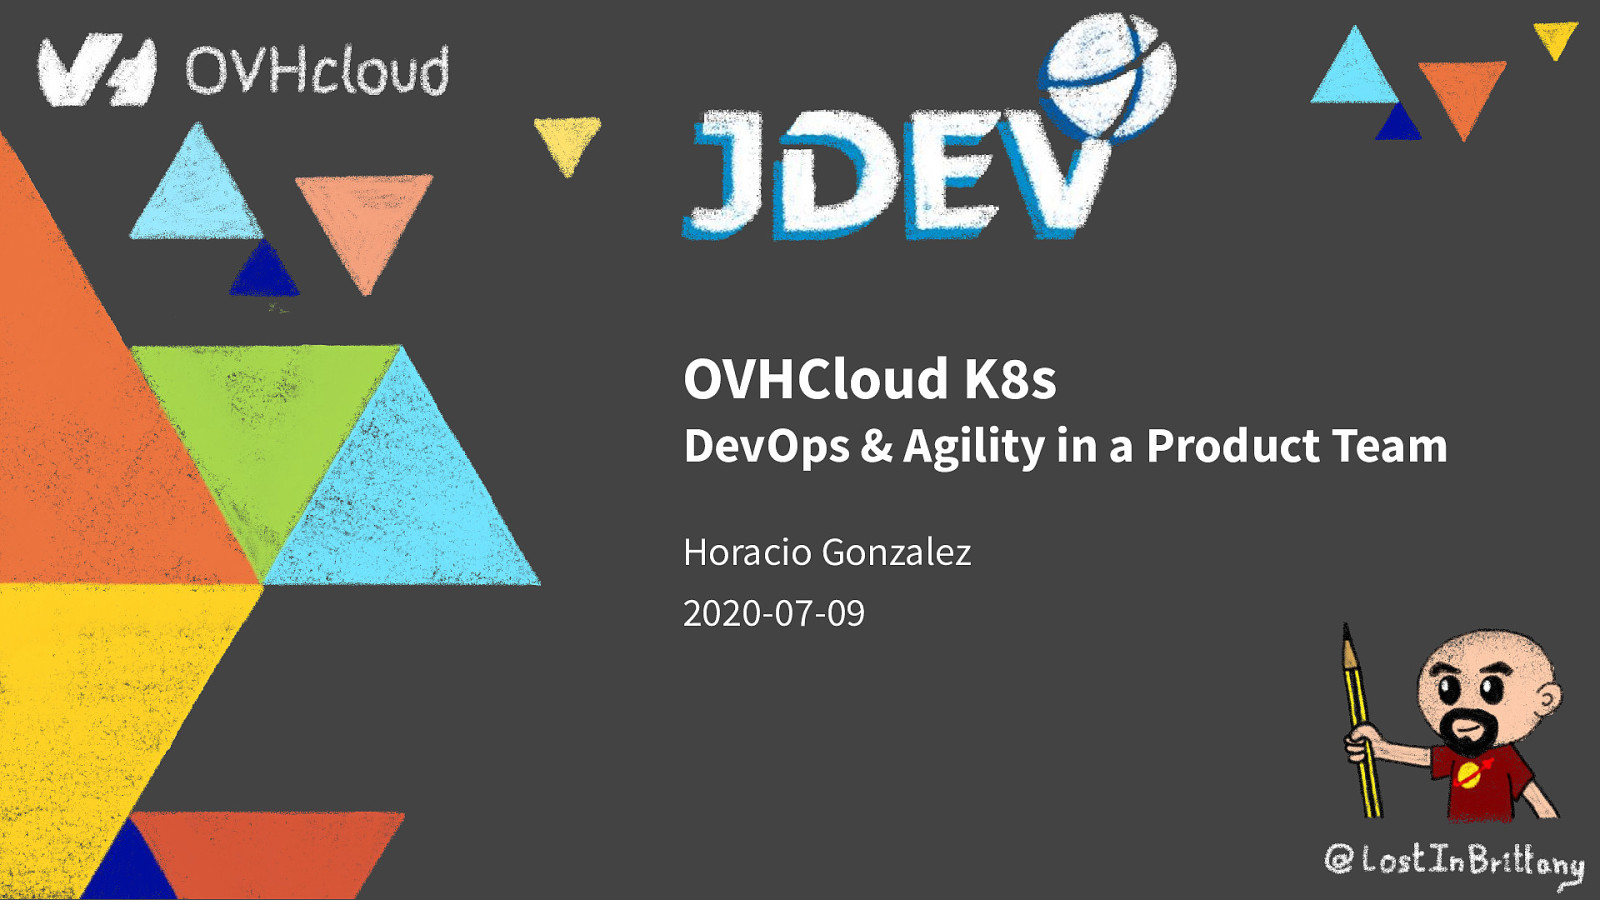 OVHCloud K8s: DevOps & Agility in a Product Team